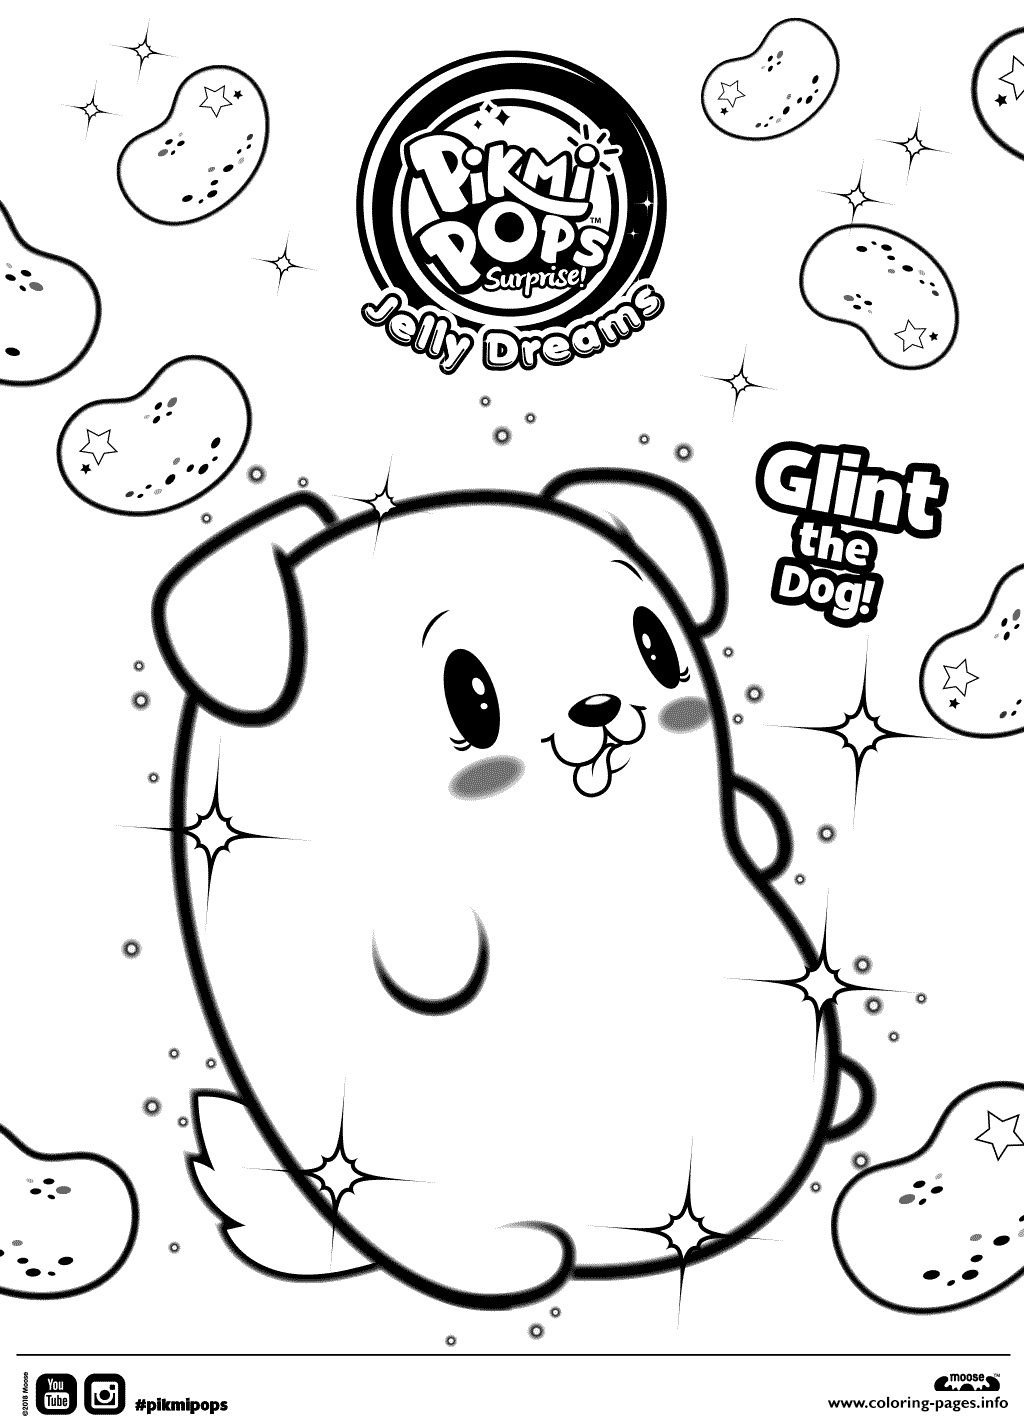 Pikmi Pops Jelly Dreamss Clint The Dog Coloring Pages ...